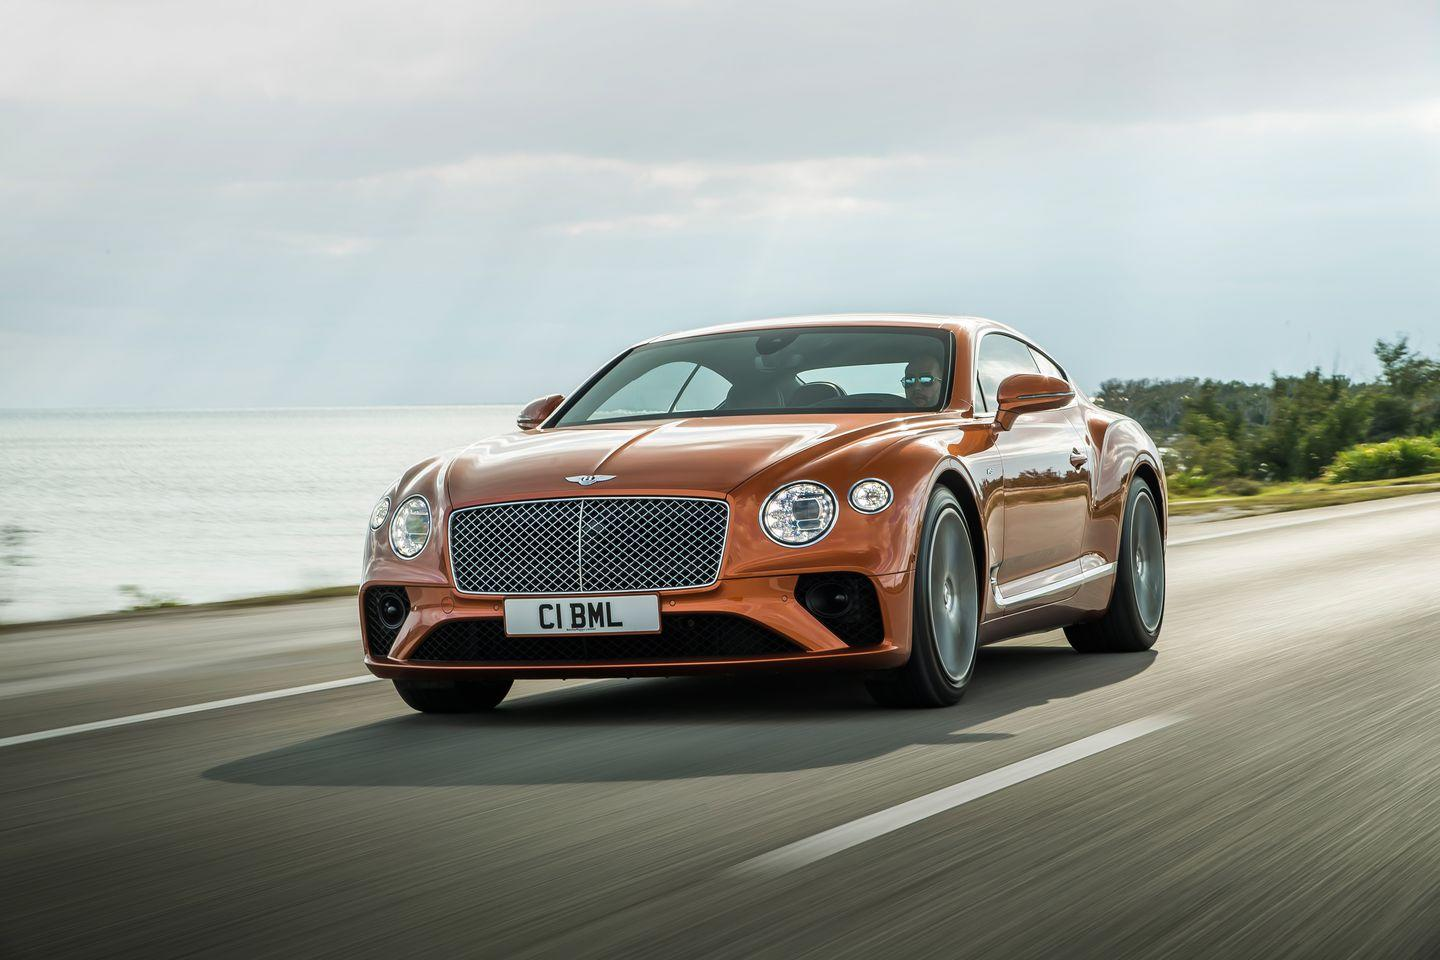 "<p>Both the Continental GT coupe <a href=""https://www.caranddriver.com/reviews/a26569199/2020-bentley-continental-gt-convertible-drive/"" rel=""nofollow noopener"" target=""_blank"" data-ylk=""slk:and convertible models"" class=""link rapid-noclick-resp"">and convertible models</a> are getting a twin-turbocharged 4.0-liter V-8 engine which promises similar performance as the W-12 despite having four fewer cylinders, 84 fewer horsepower, and 96 fewer lb-ft of torque.</p>"